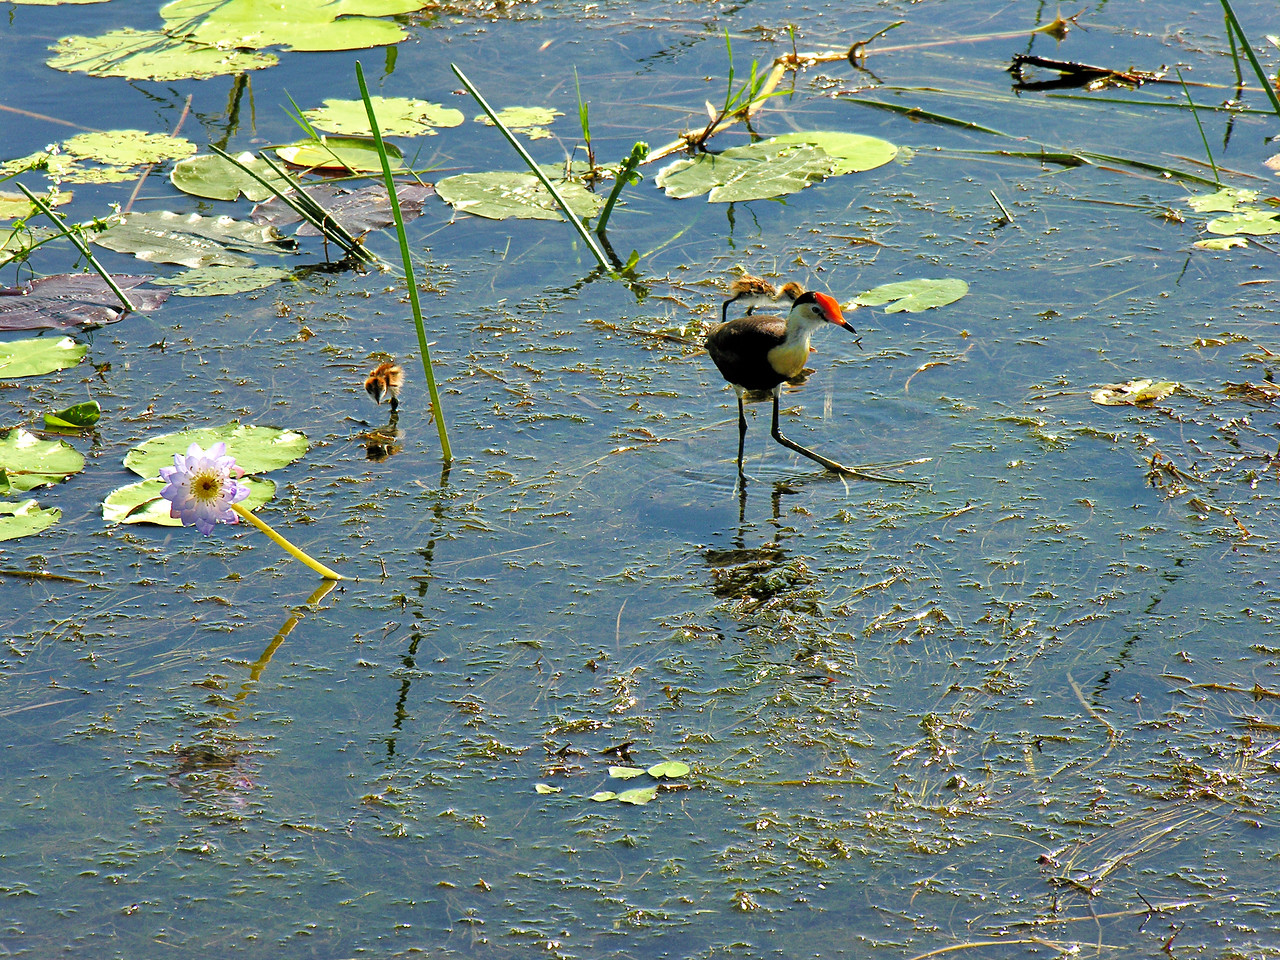 Comb-crested Jacana, Jesus bird, Irediparra gallinacea. Yellow Water Billabong, Kakadu National Park, NT, Australia. May 2007